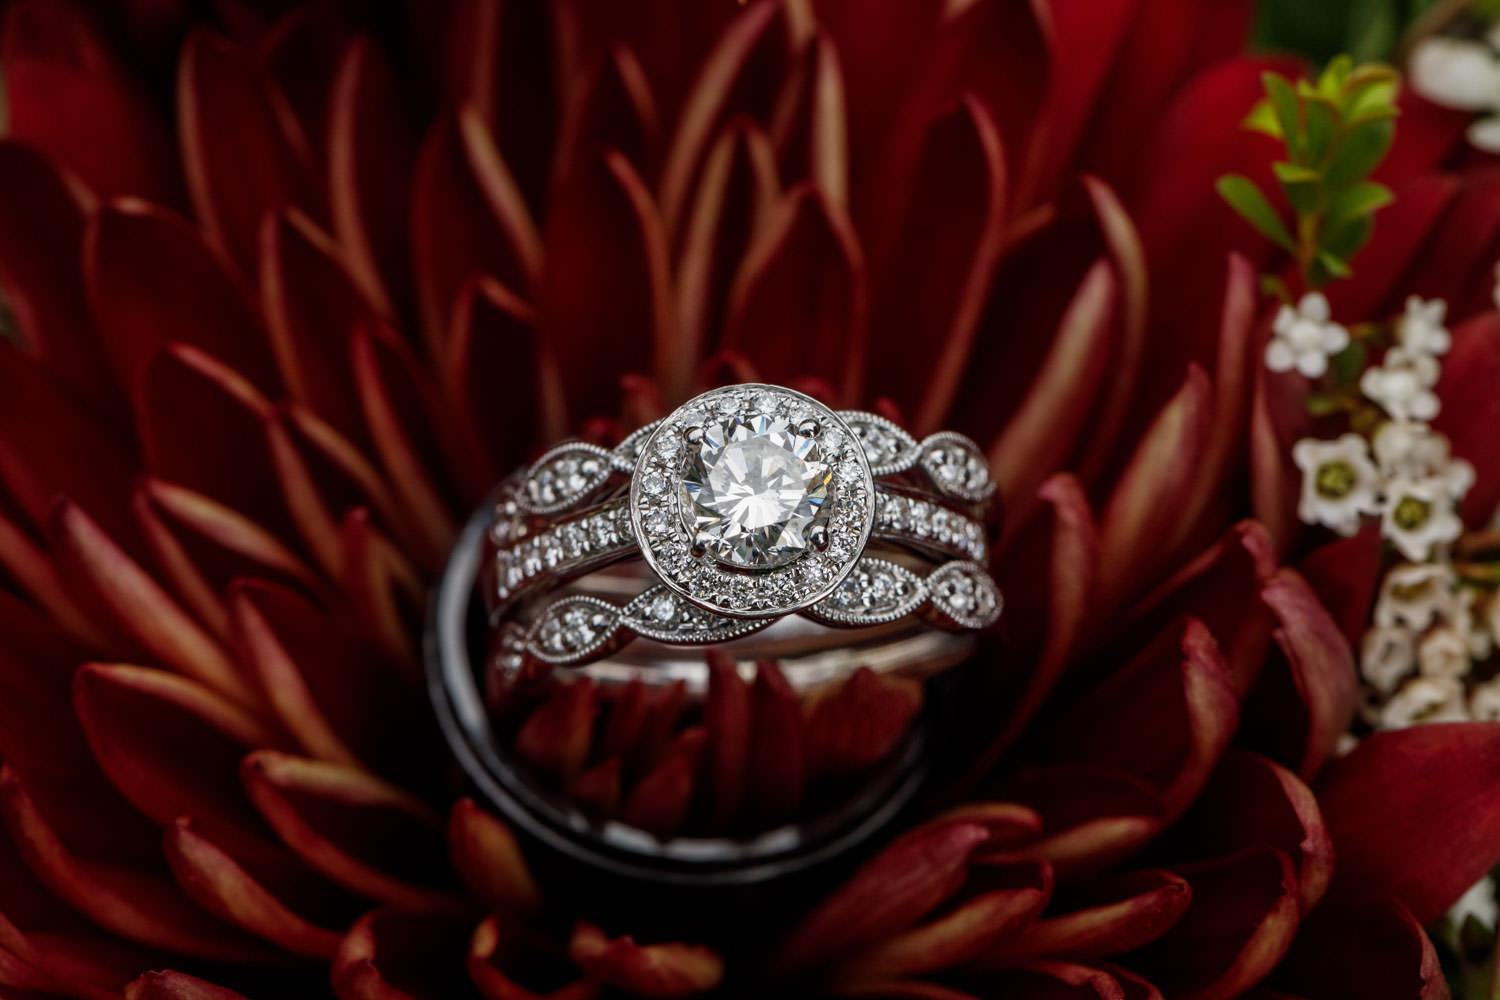 Close up photo of engagement ring placed in flower